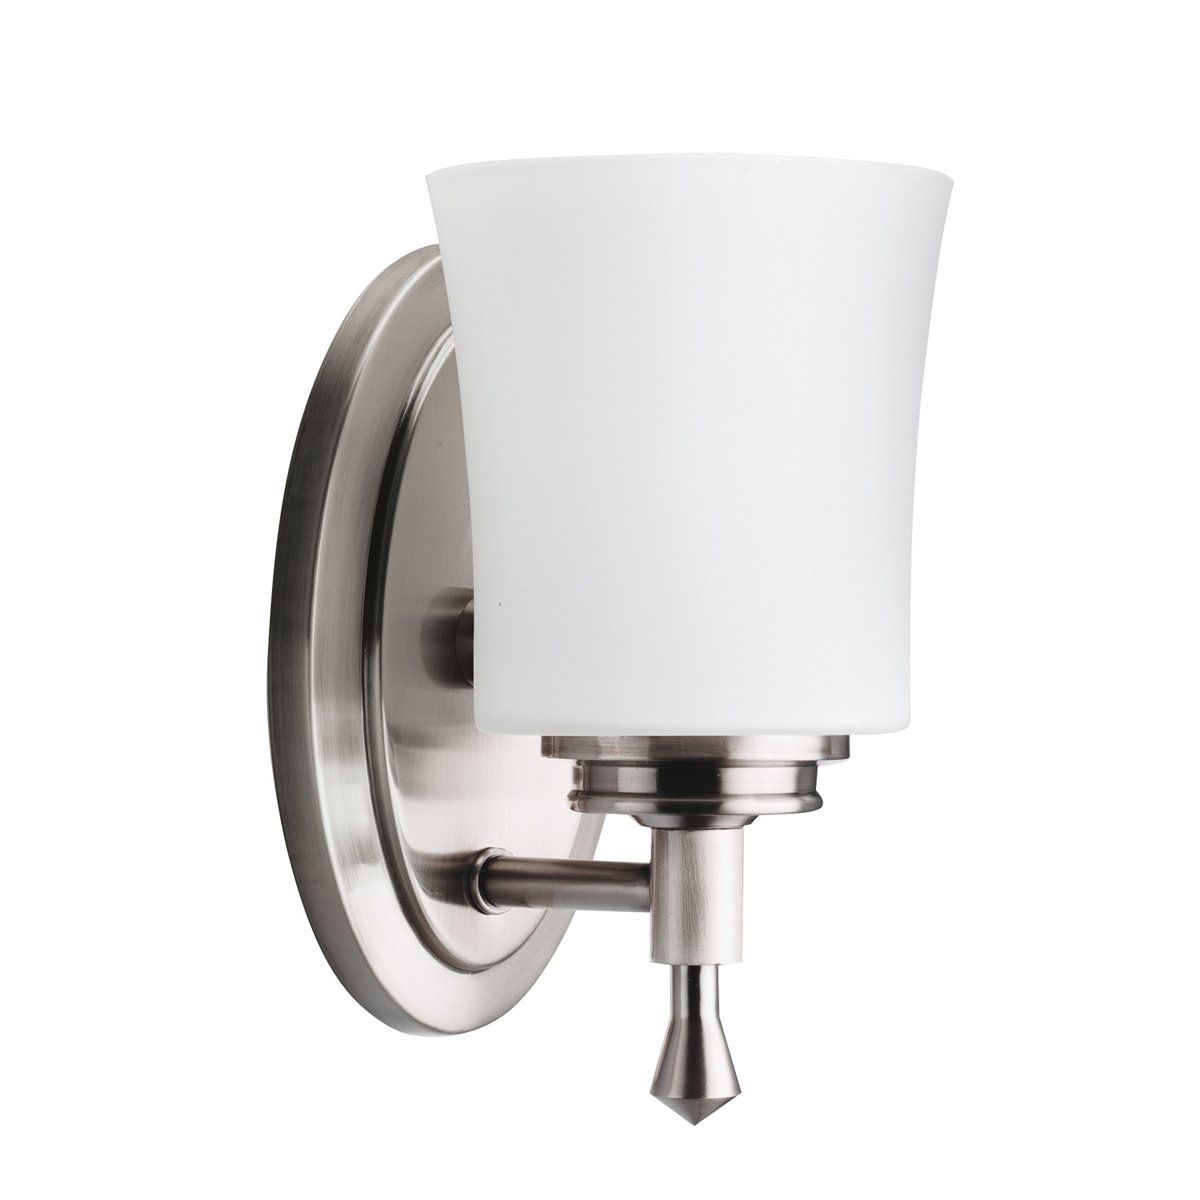 Kichler NI Wharton Wall Sconce Light Brushed Nickel Vanity - Satin nickel bathroom sconces